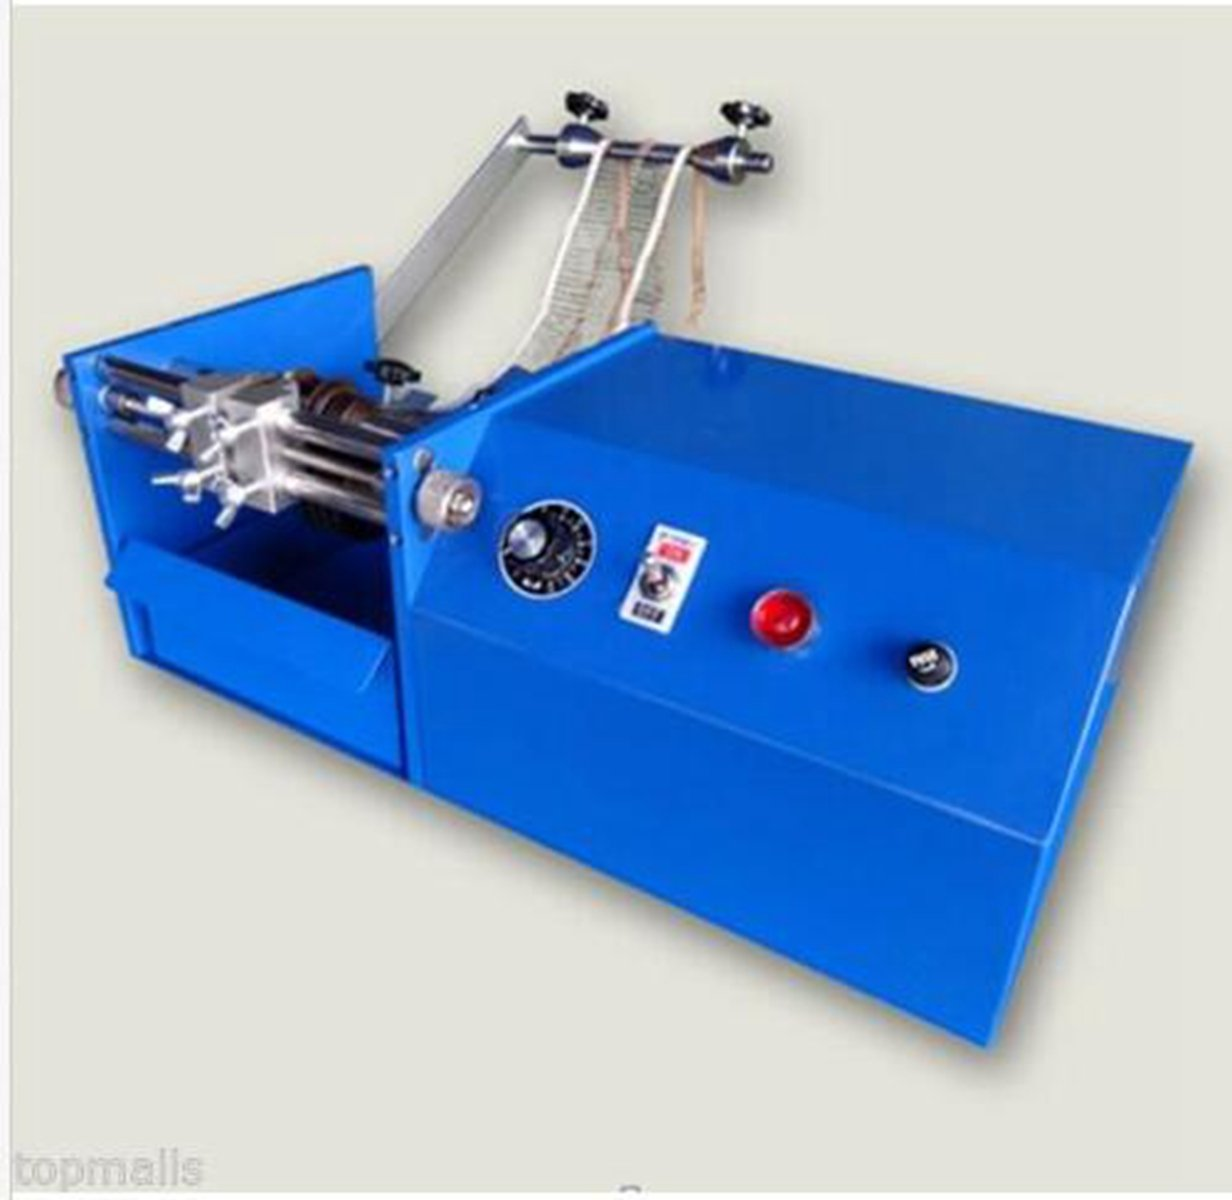 Welljoin Automatic Taped- resistance U type Resistor Cut & Form Machine